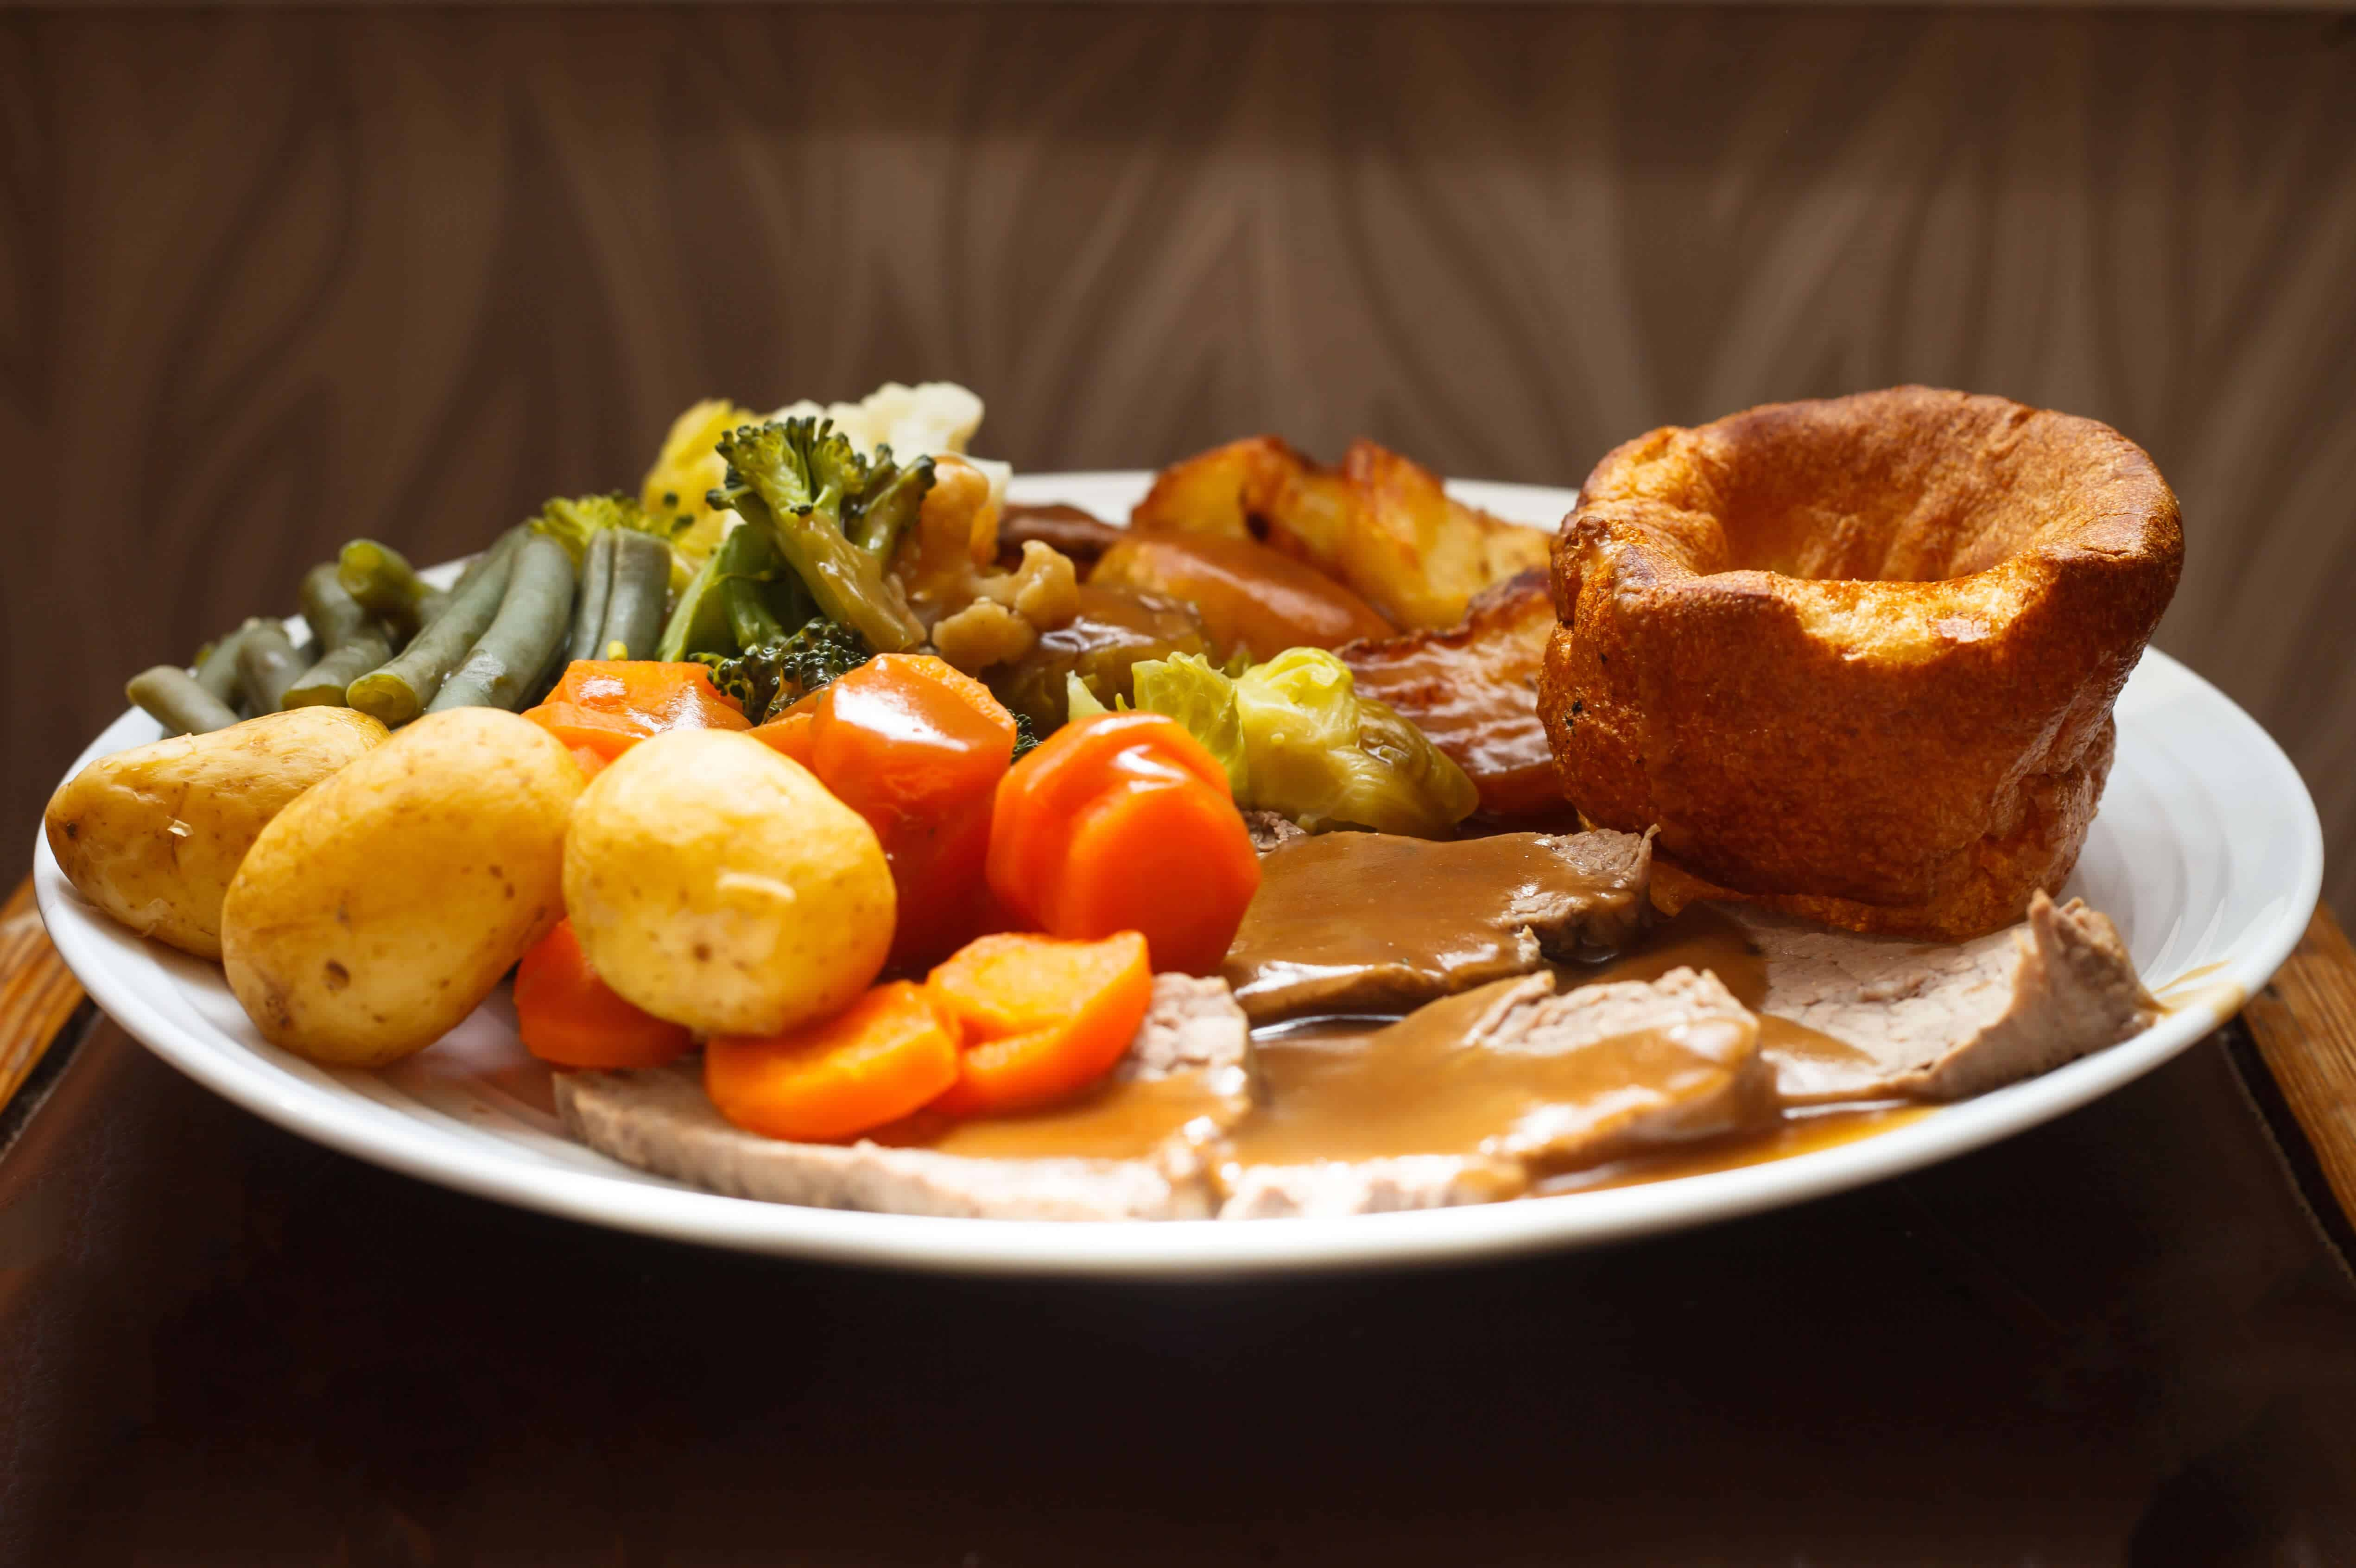 Traditional British roast beef and Yorkshire pudding dinner